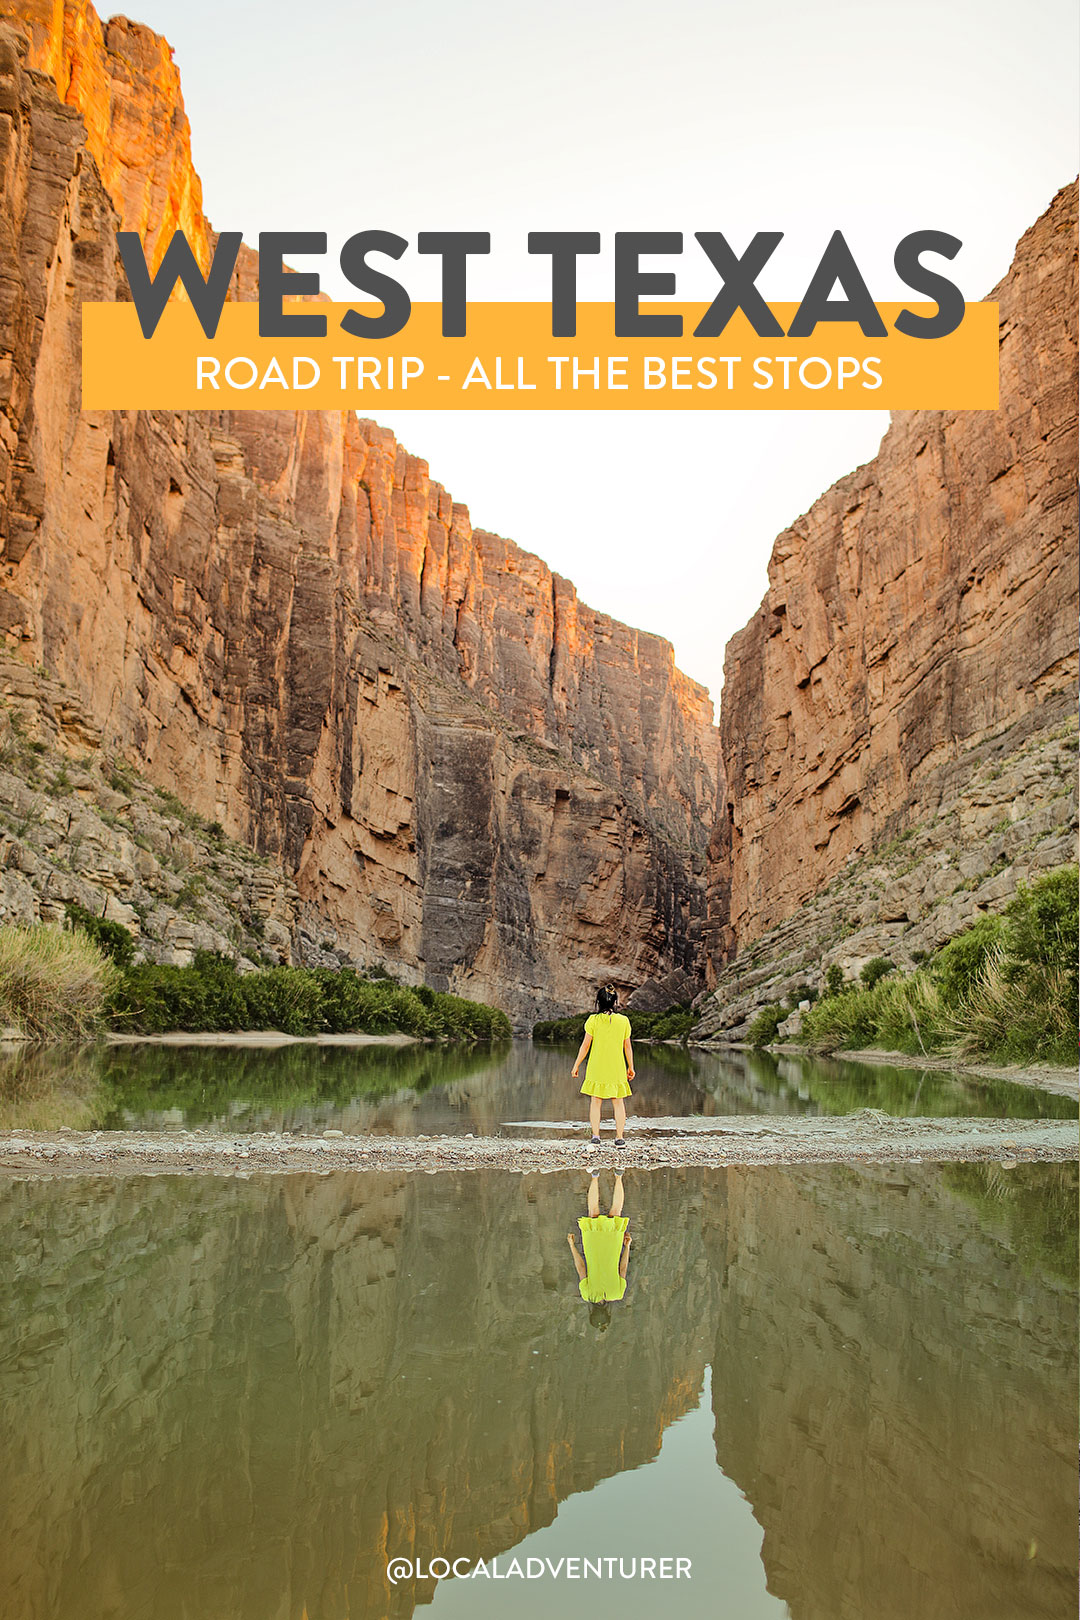 All The Best Things to Do in West Texas - Your Ultimate West Texas Road Trip